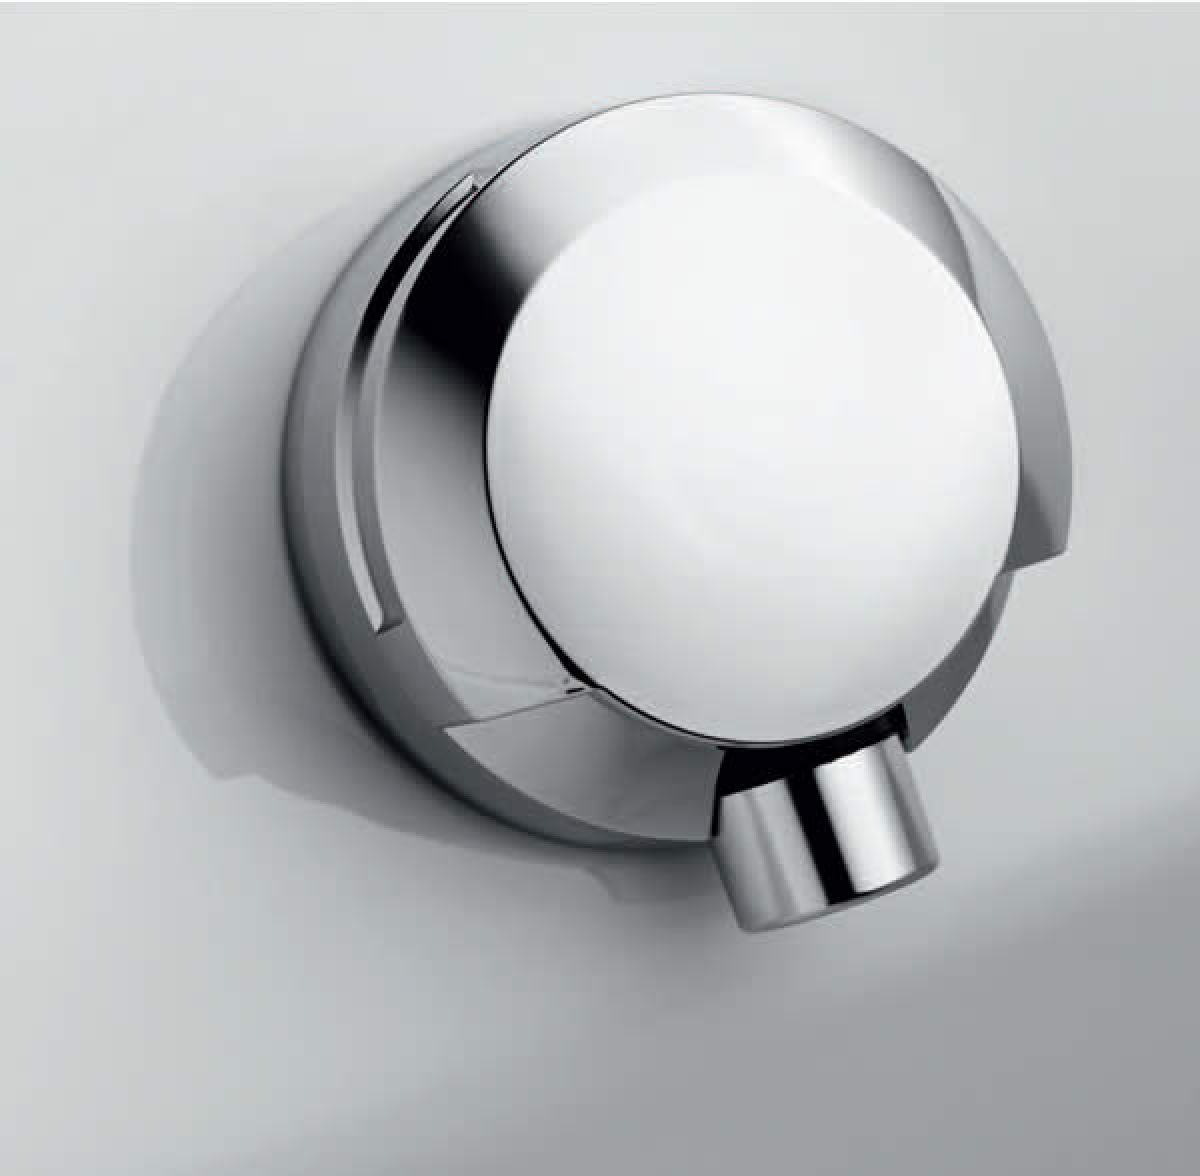 Geberit Bath Filler Pop Up Waste And Overflow Uk Bathrooms